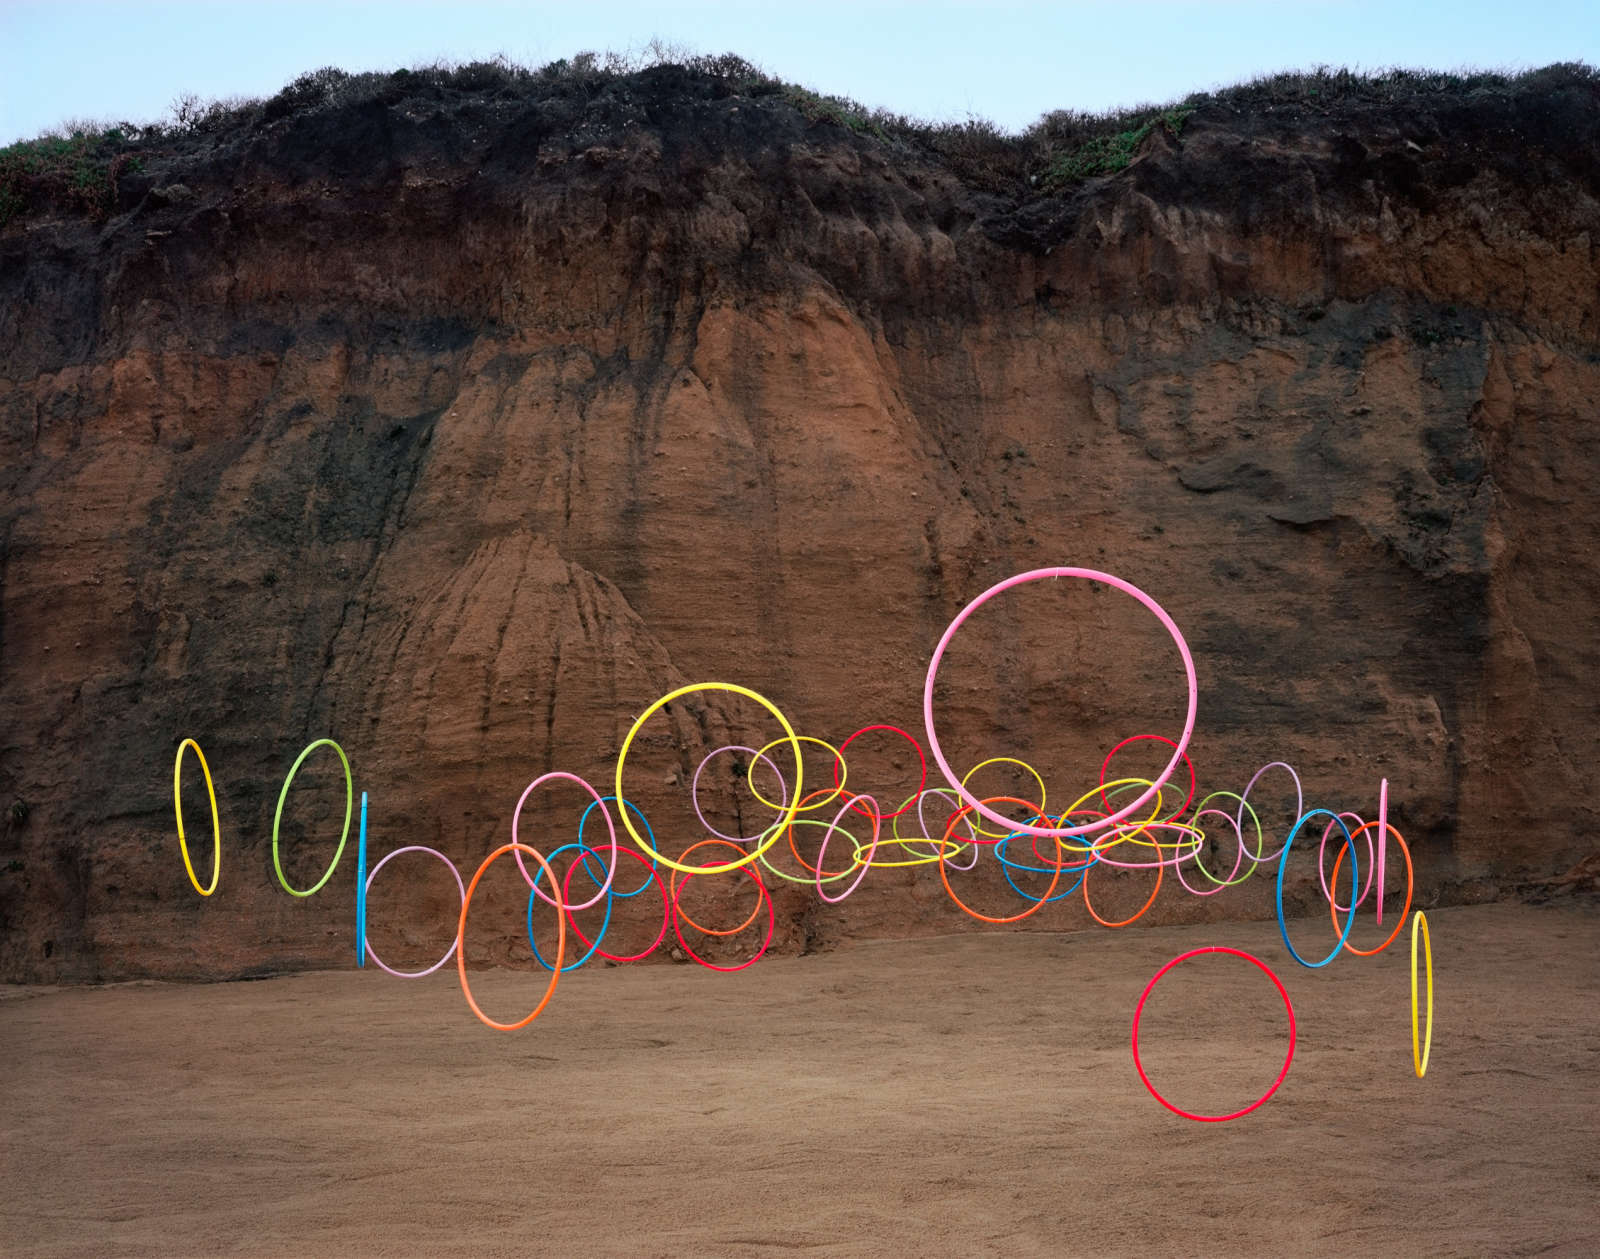 Hula Hoops no. 2, Montara, California, 2016